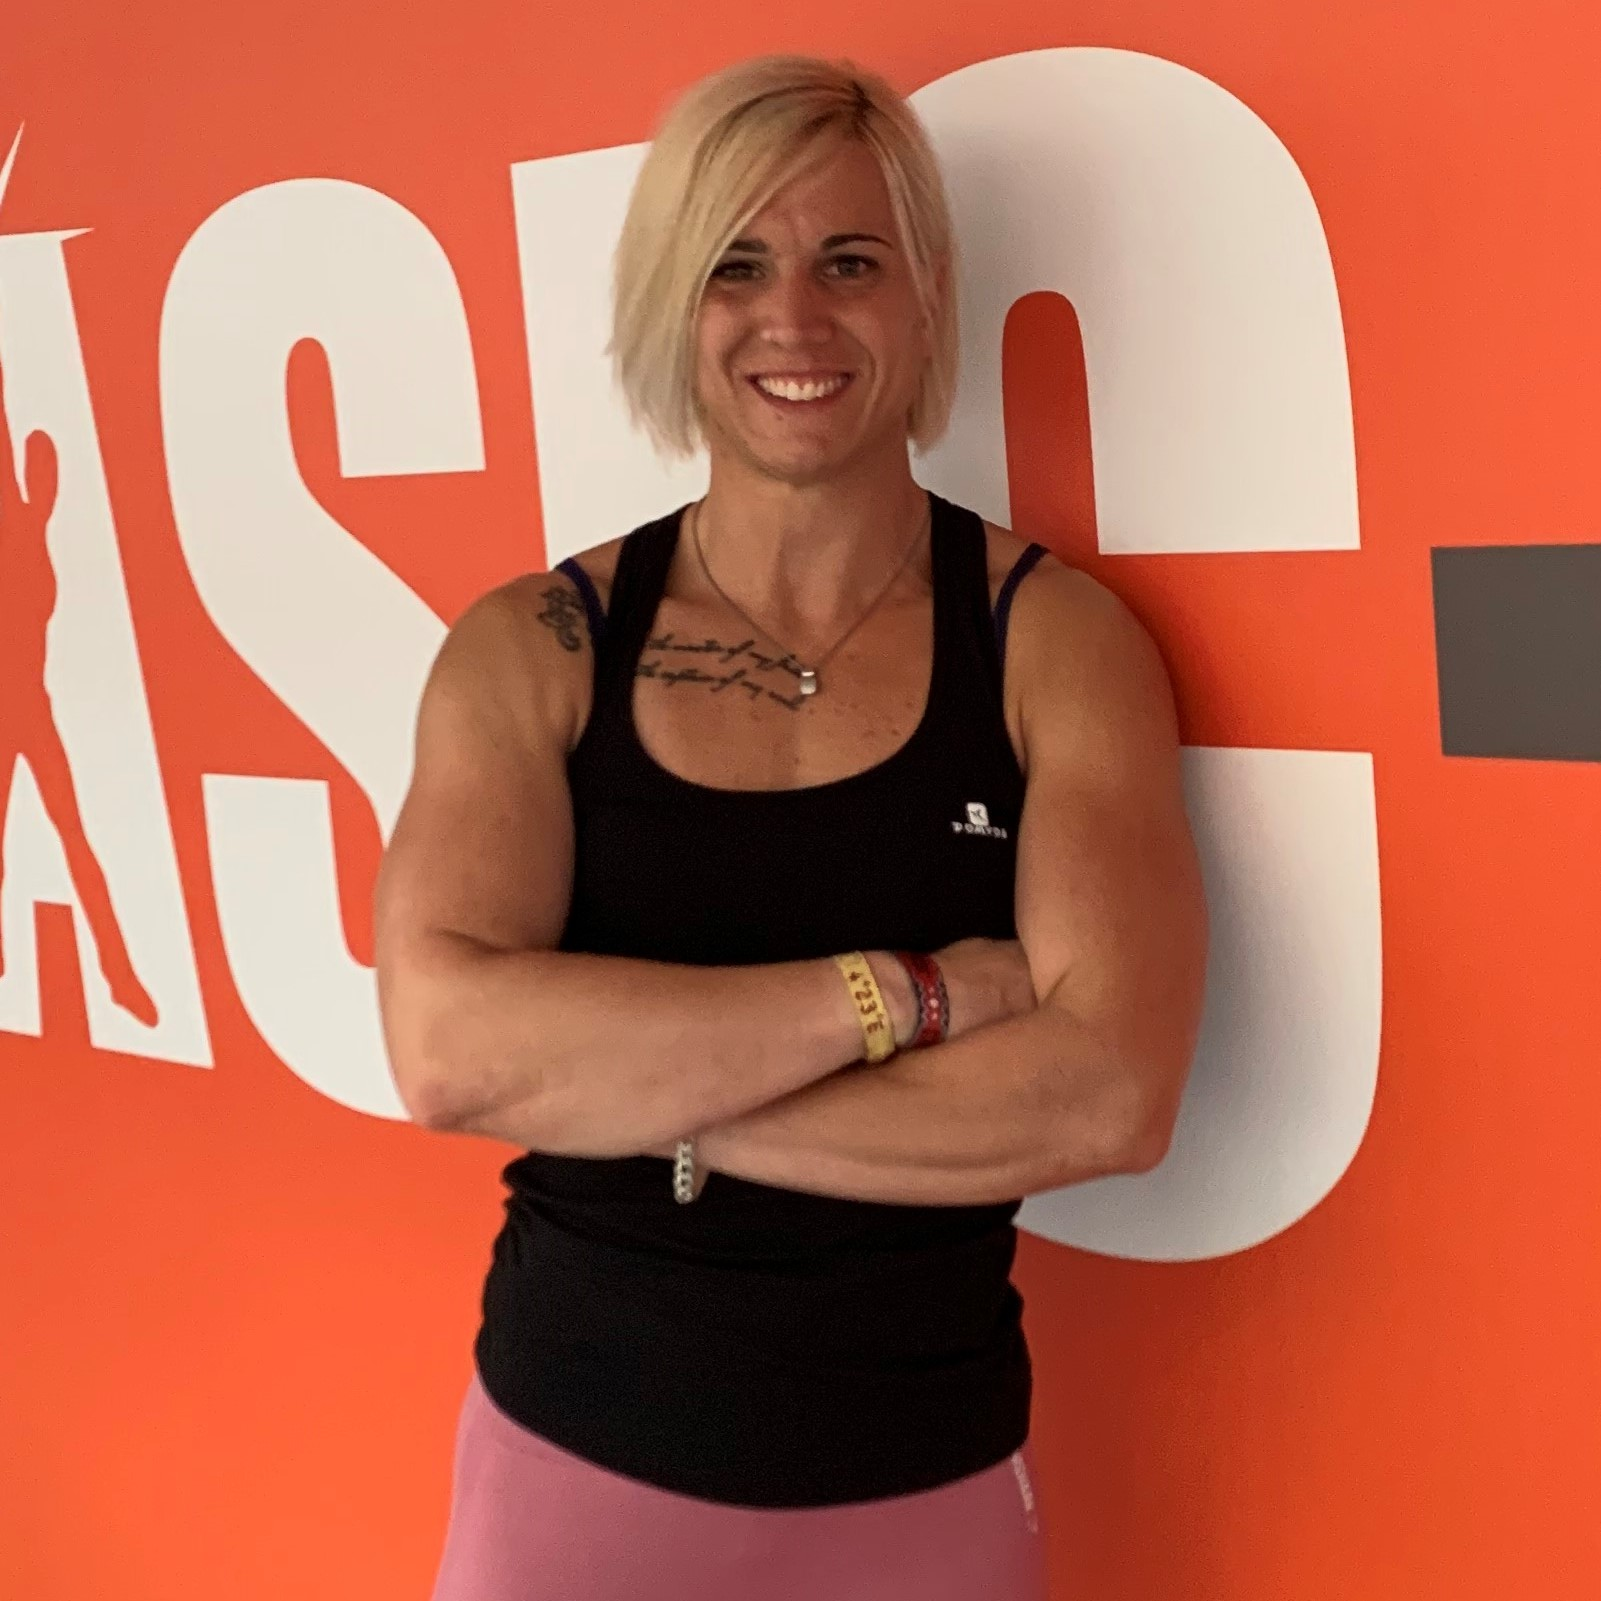 Sportschool Amsterdam Sloterparkbad Ladies - photo 17